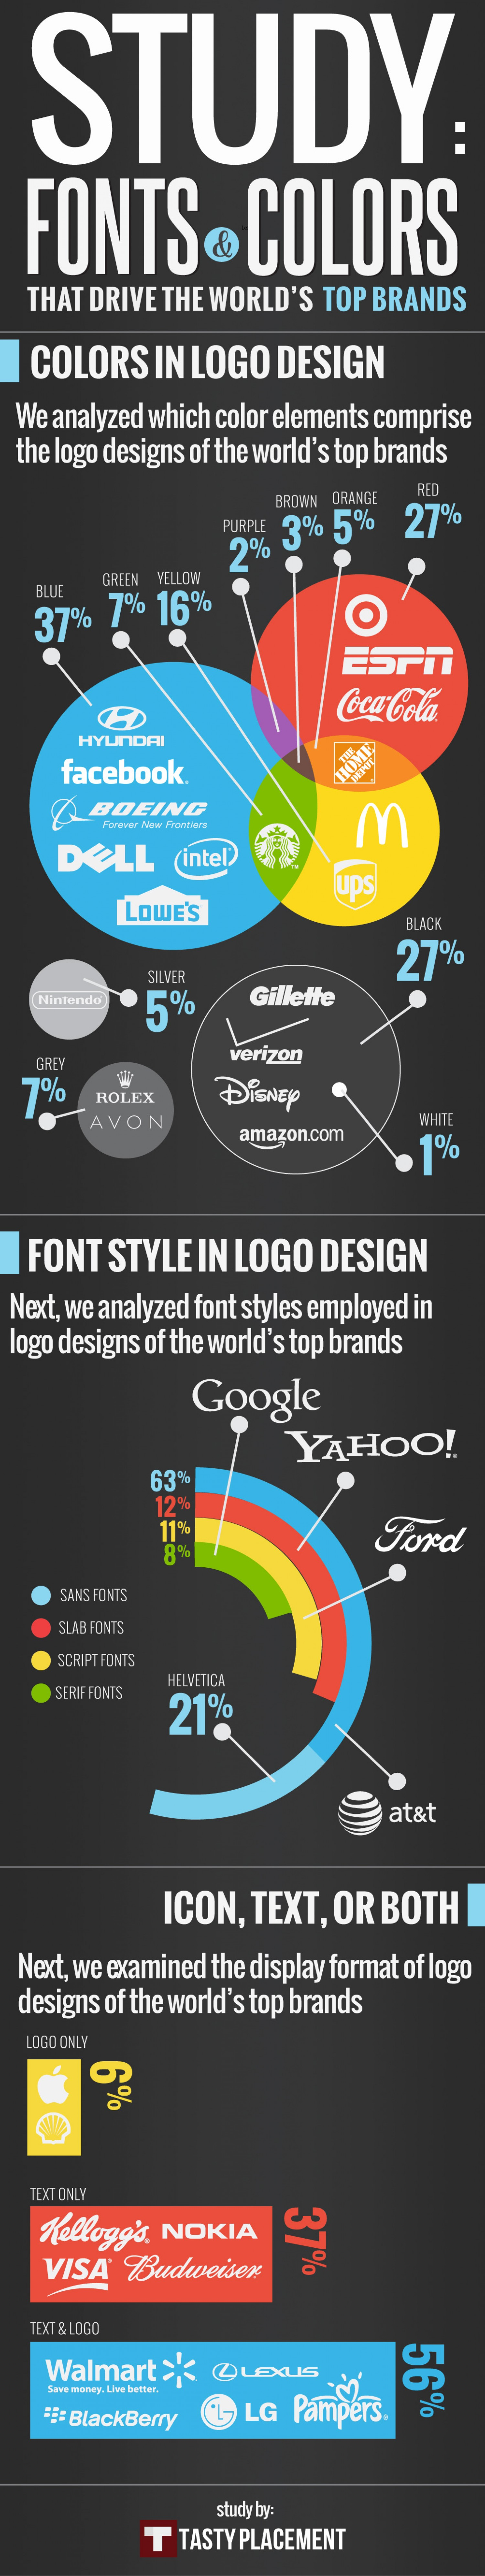 Fonts and colours for leading brands.